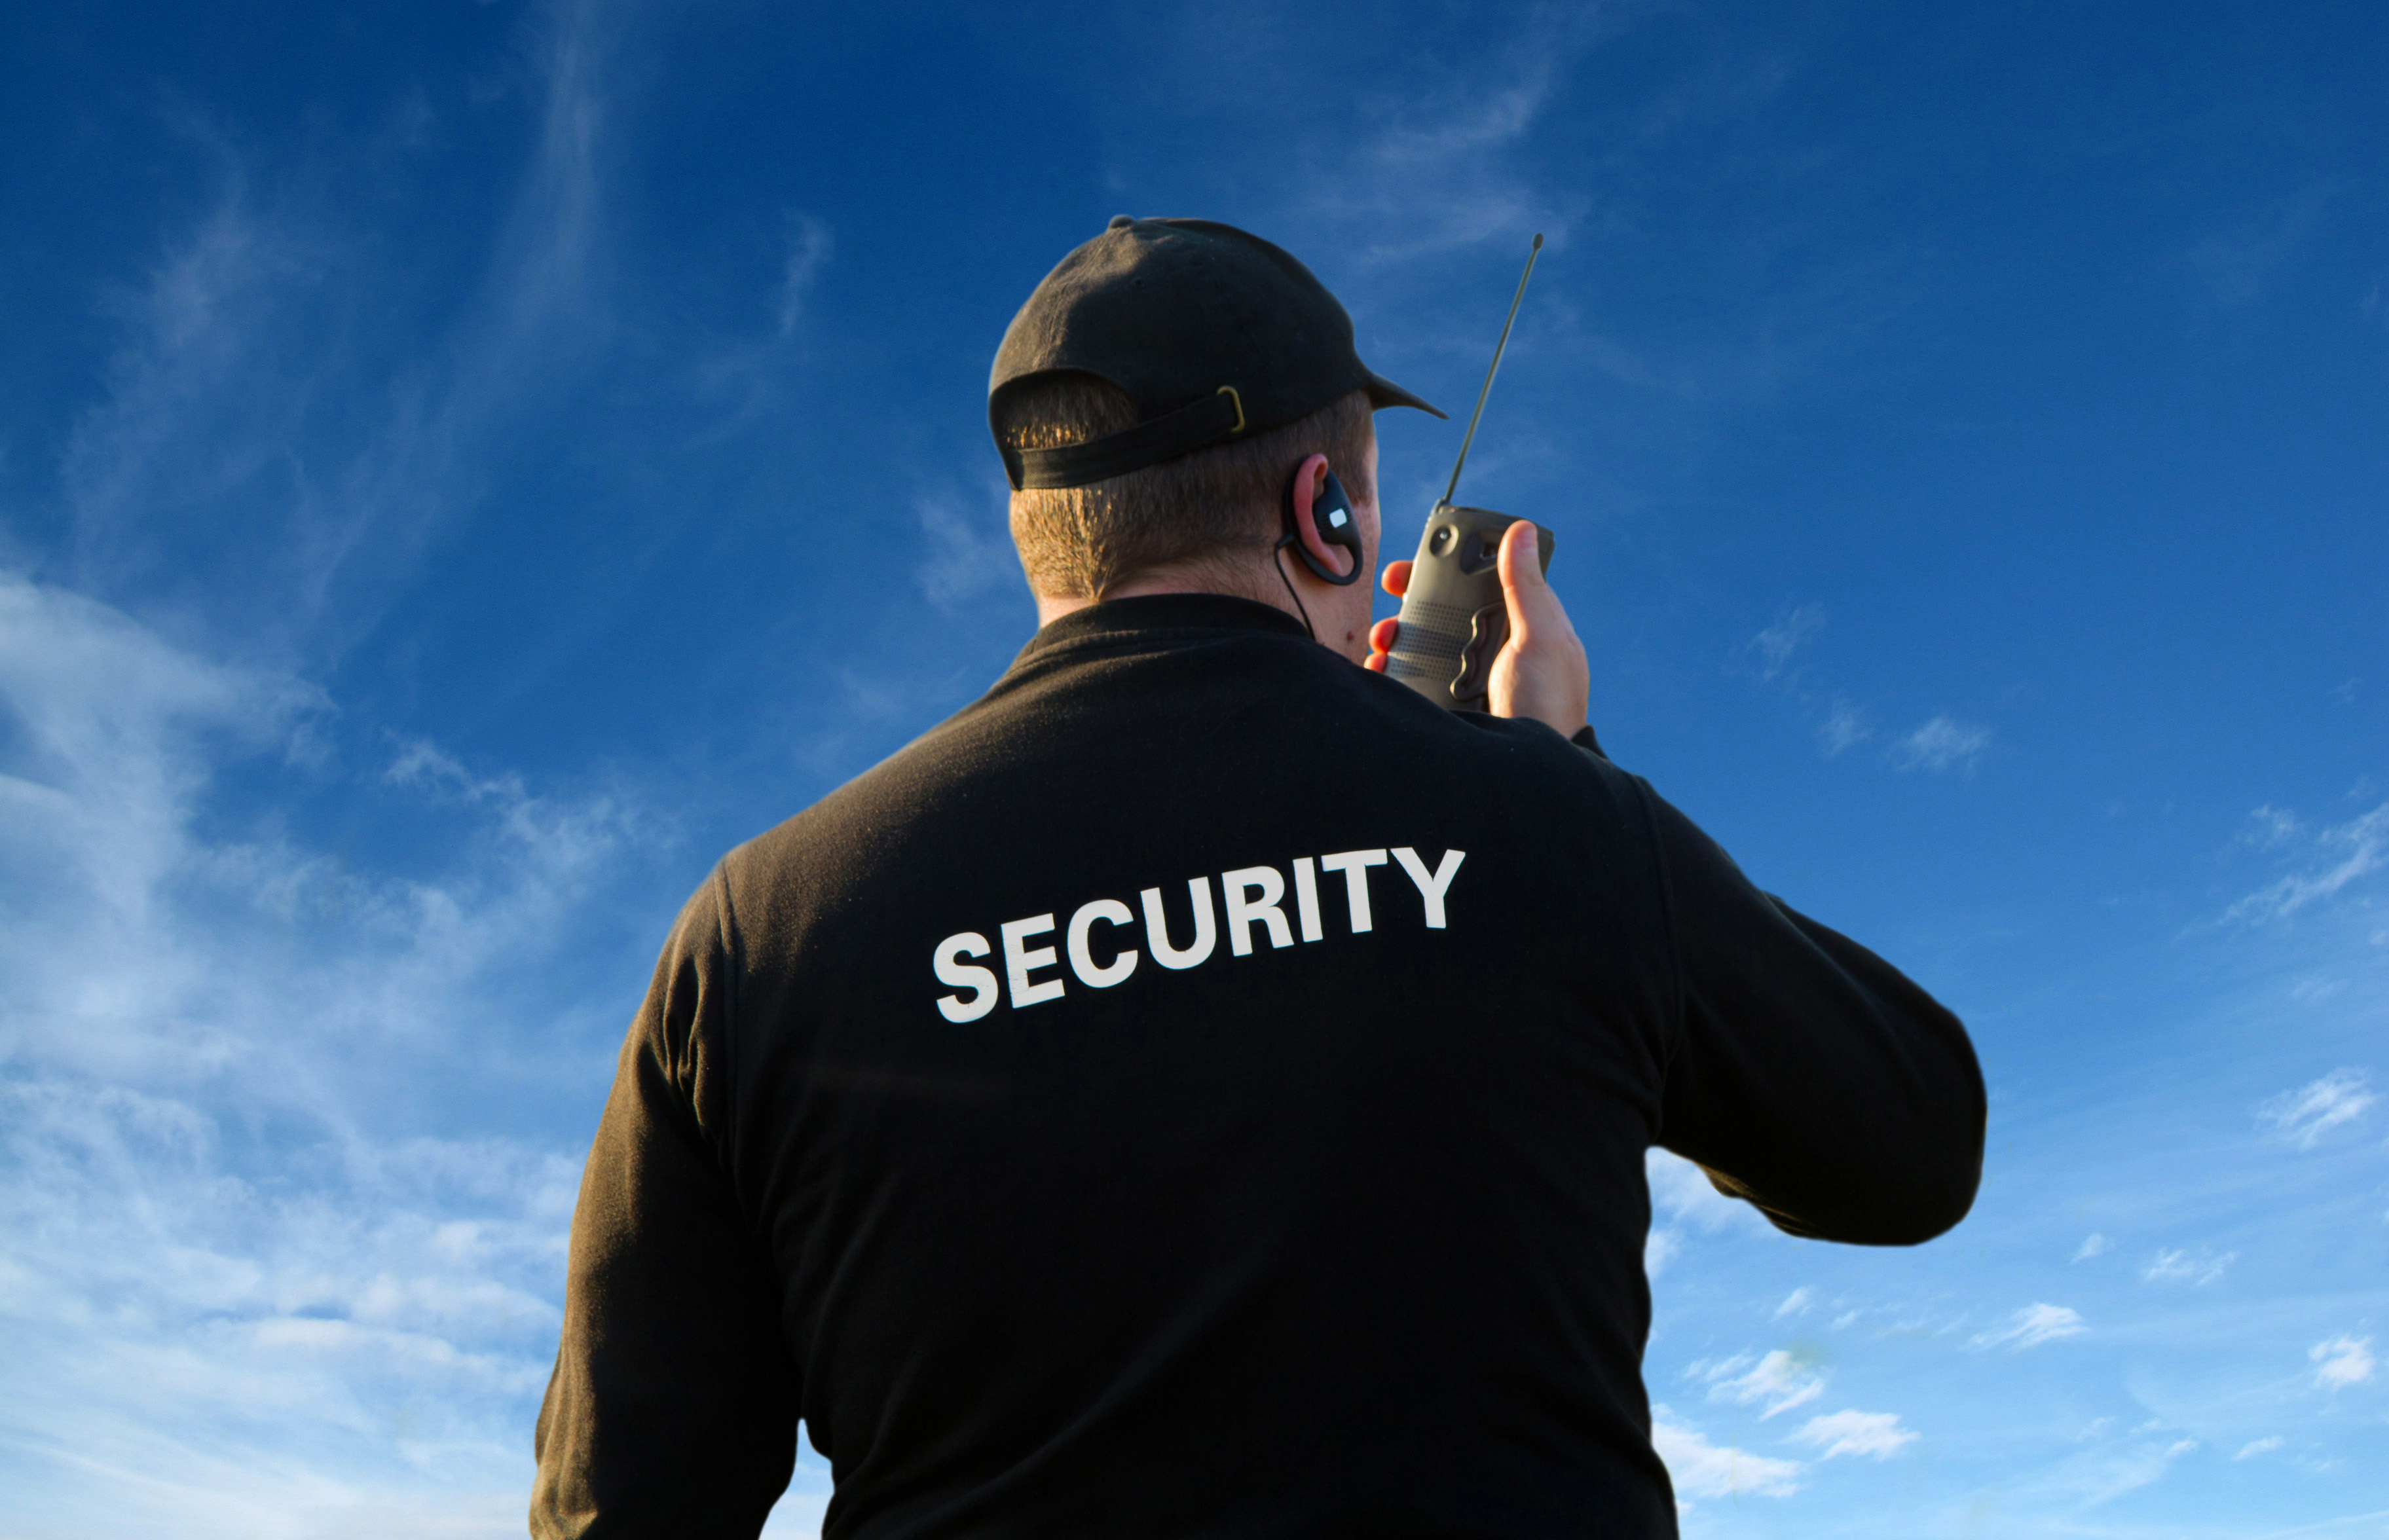 Be A Security Guard And Live A Life With Dignity While Protecting Commoners